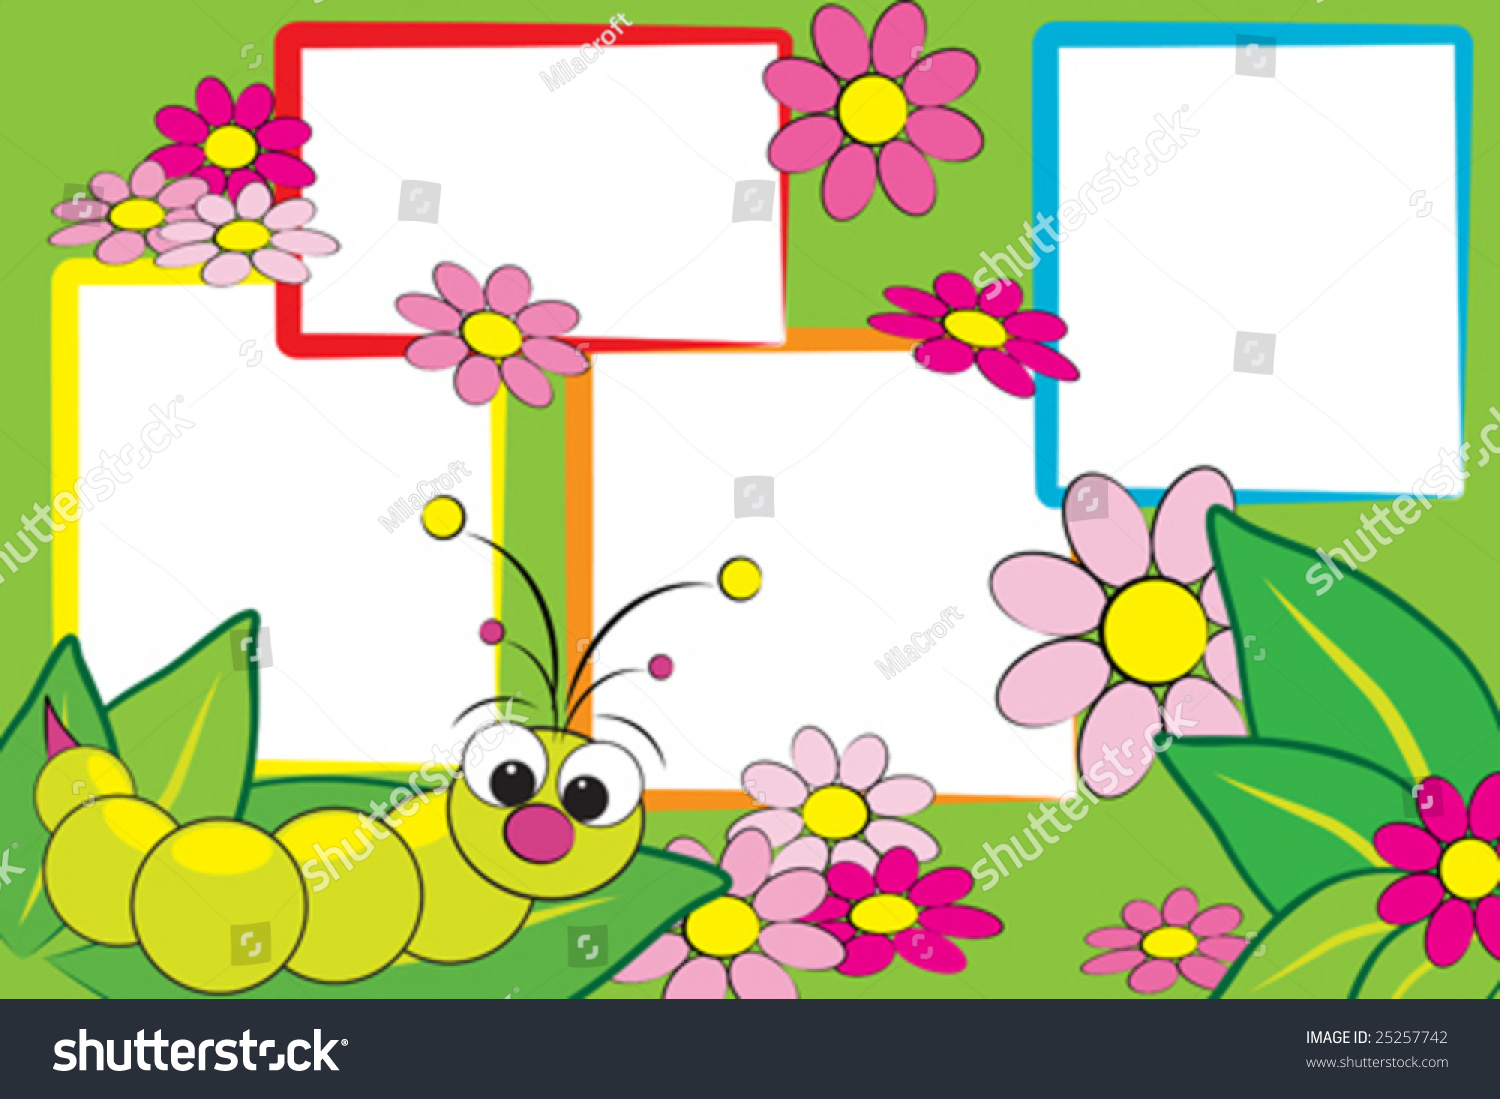 Kid Scrapbook Grub Flowers Photo Frames Stock Vector HD (Royalty ...